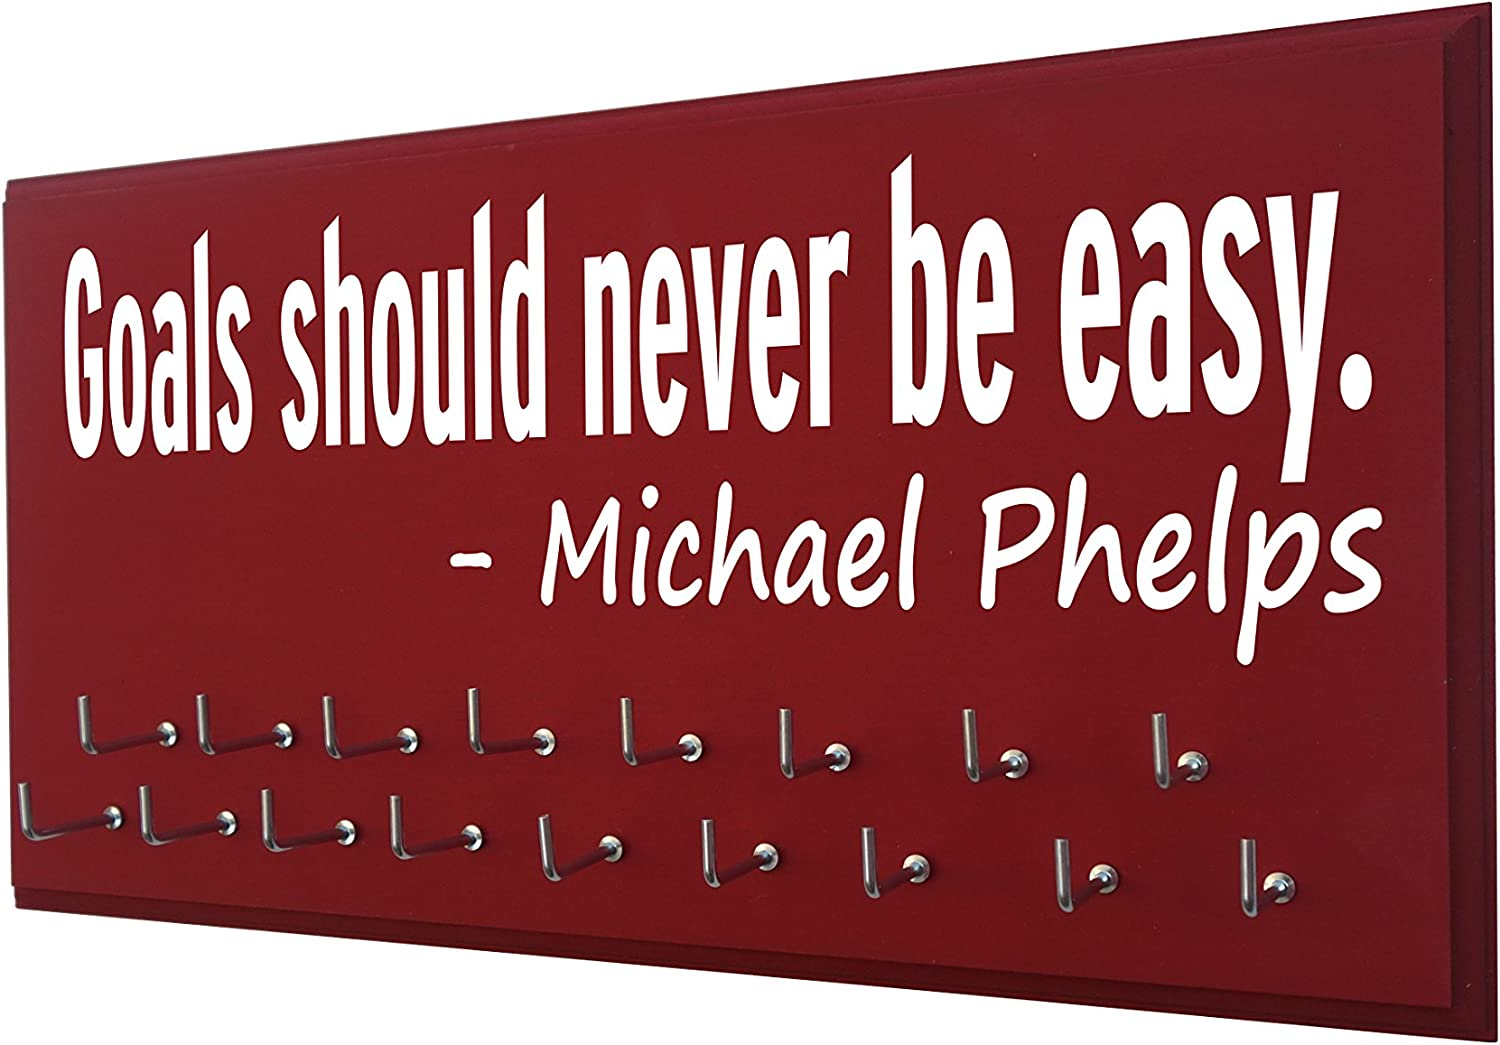 Michael Phelps Swimmer Gifts Swimming Gifts for Girls Goals Should Never BE Easy RunningontheWall Swimming Medal Holder Swimming Medals Ribbons Display Kids